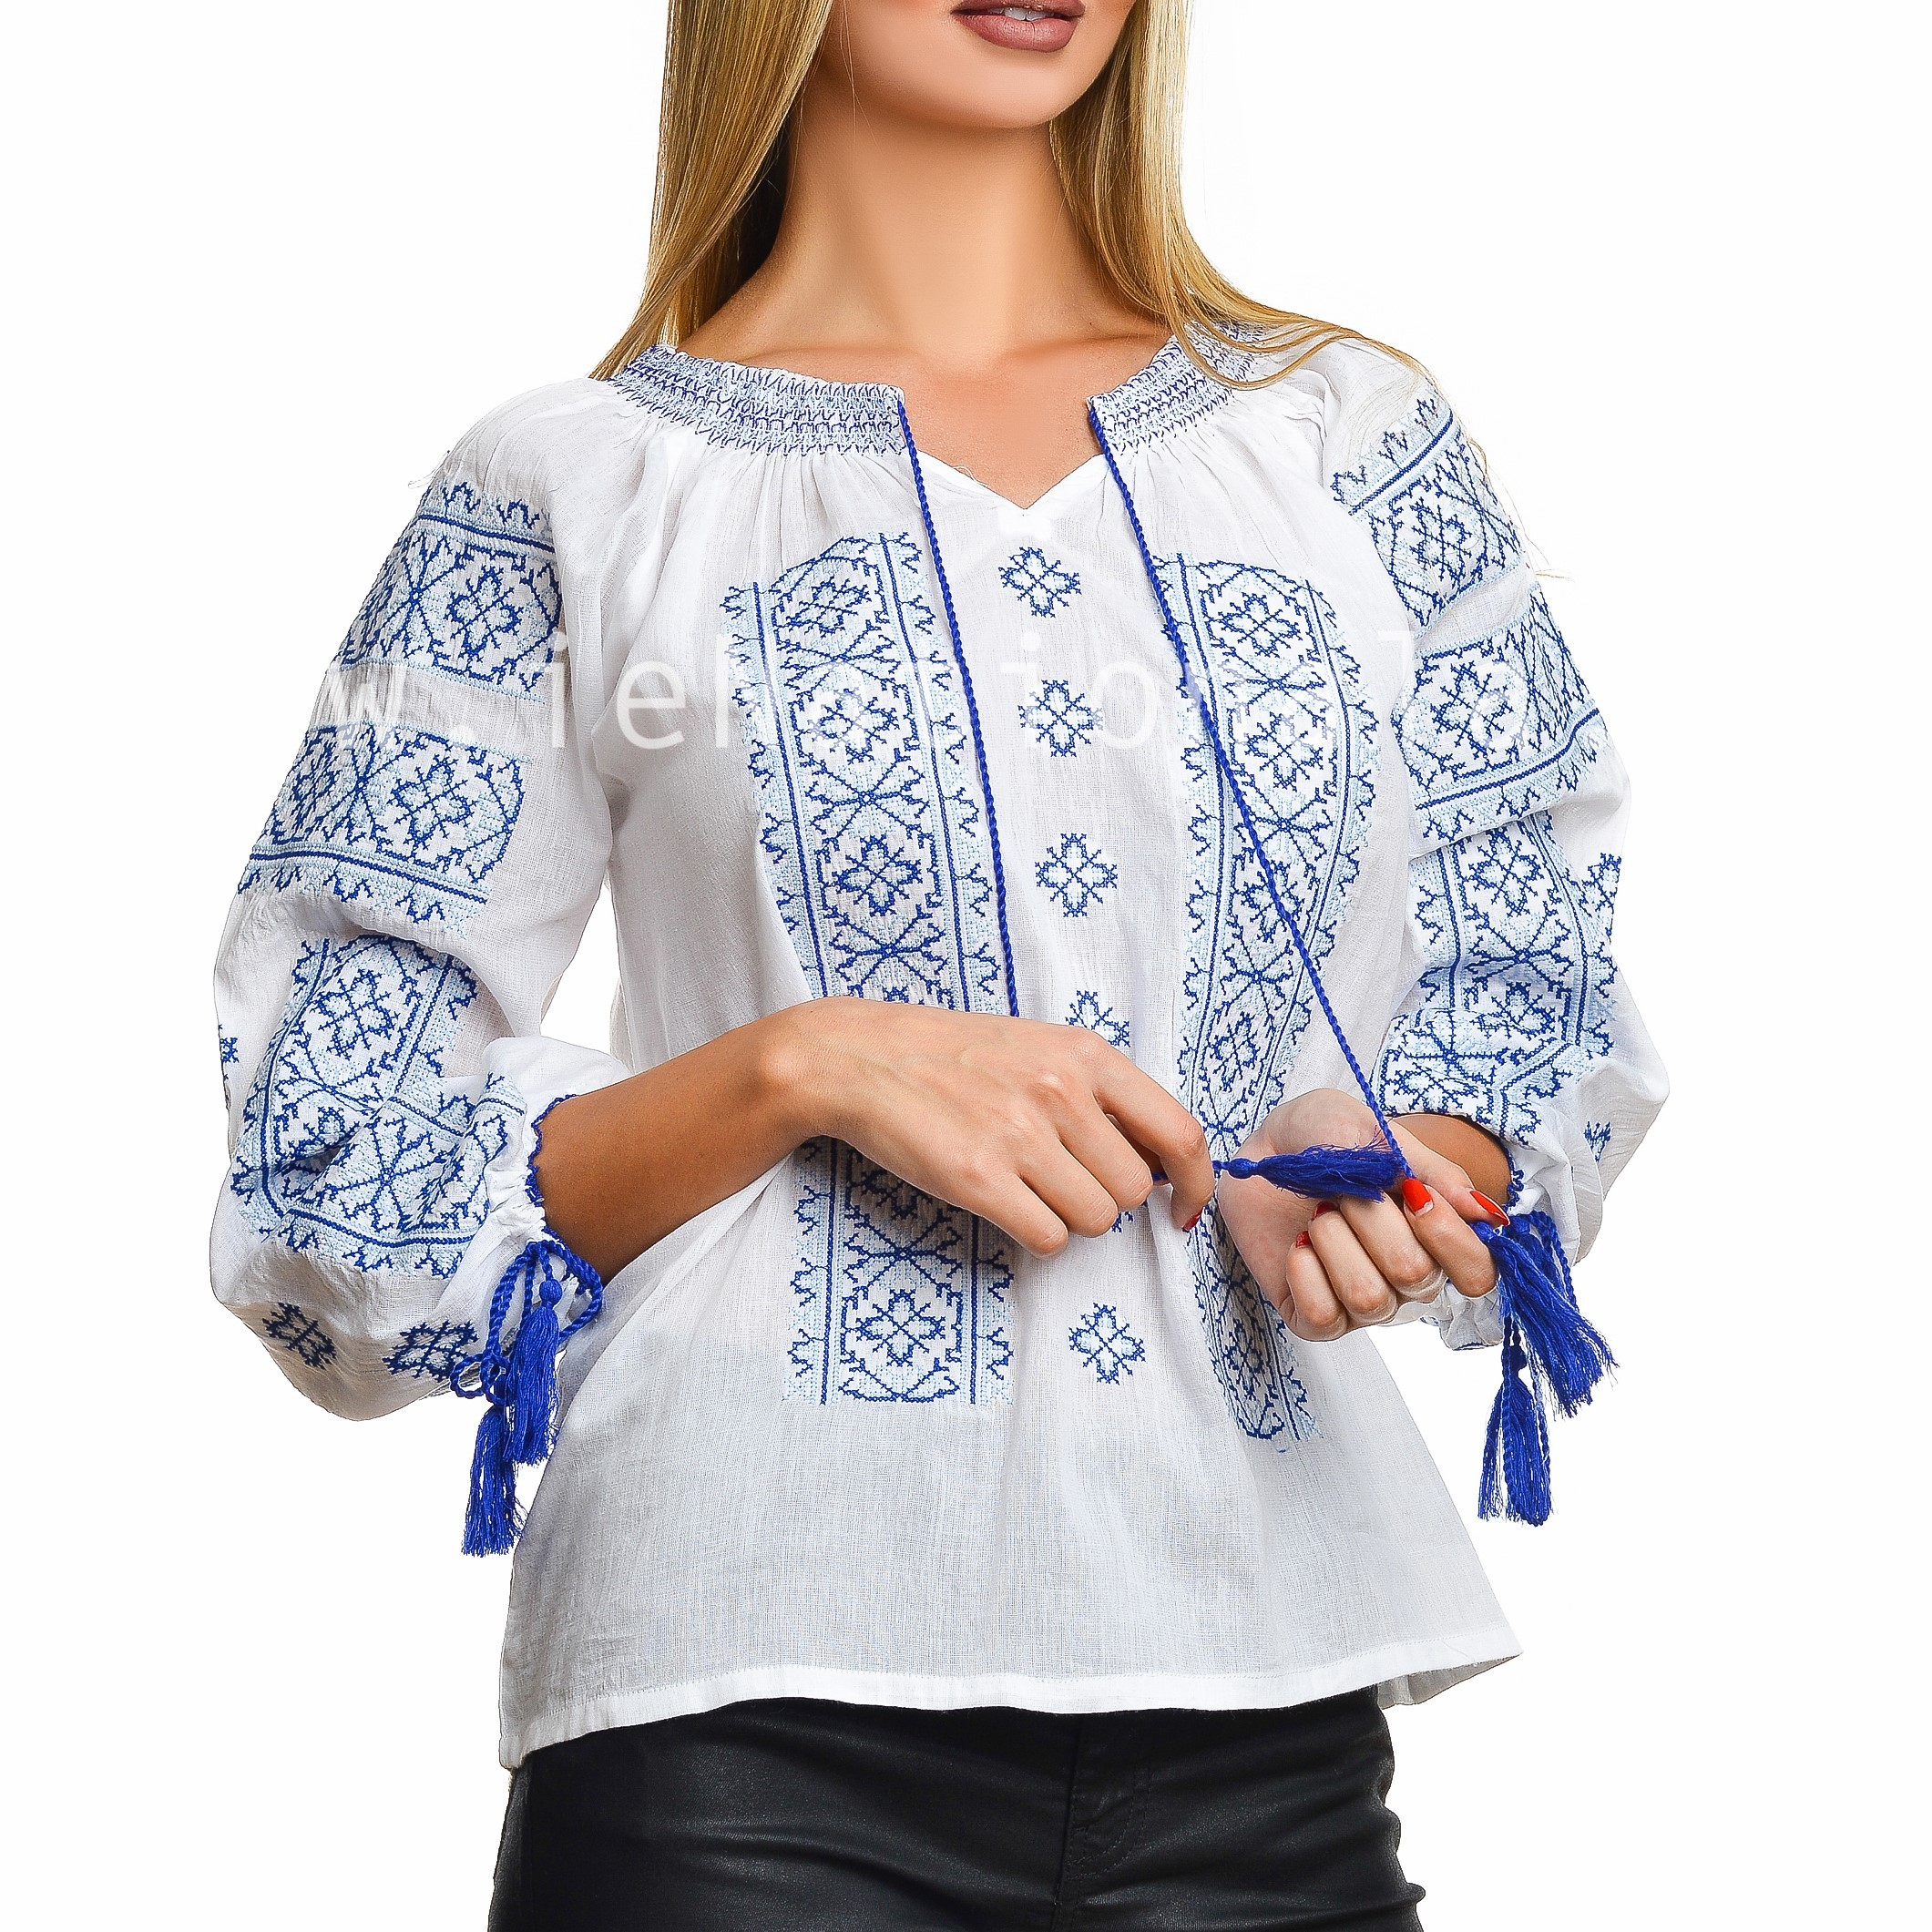 Bluza traditionala - BRIANA alba 02